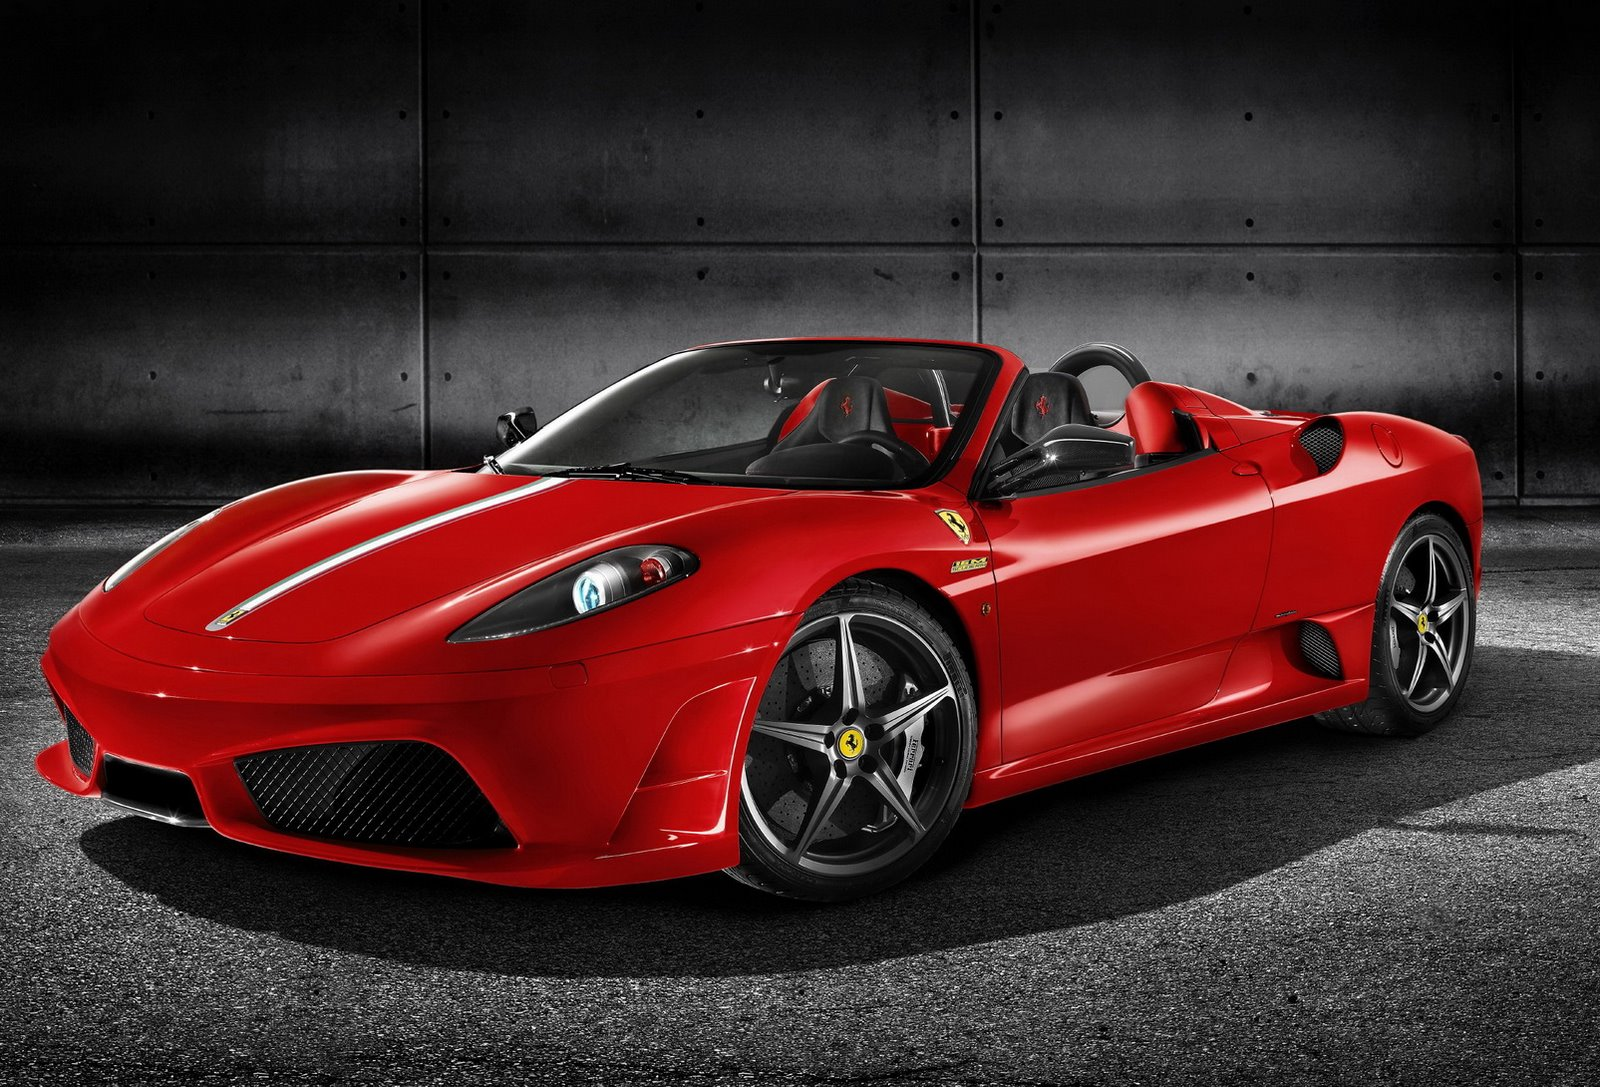 Ferrari F430 Cars Specification And Price